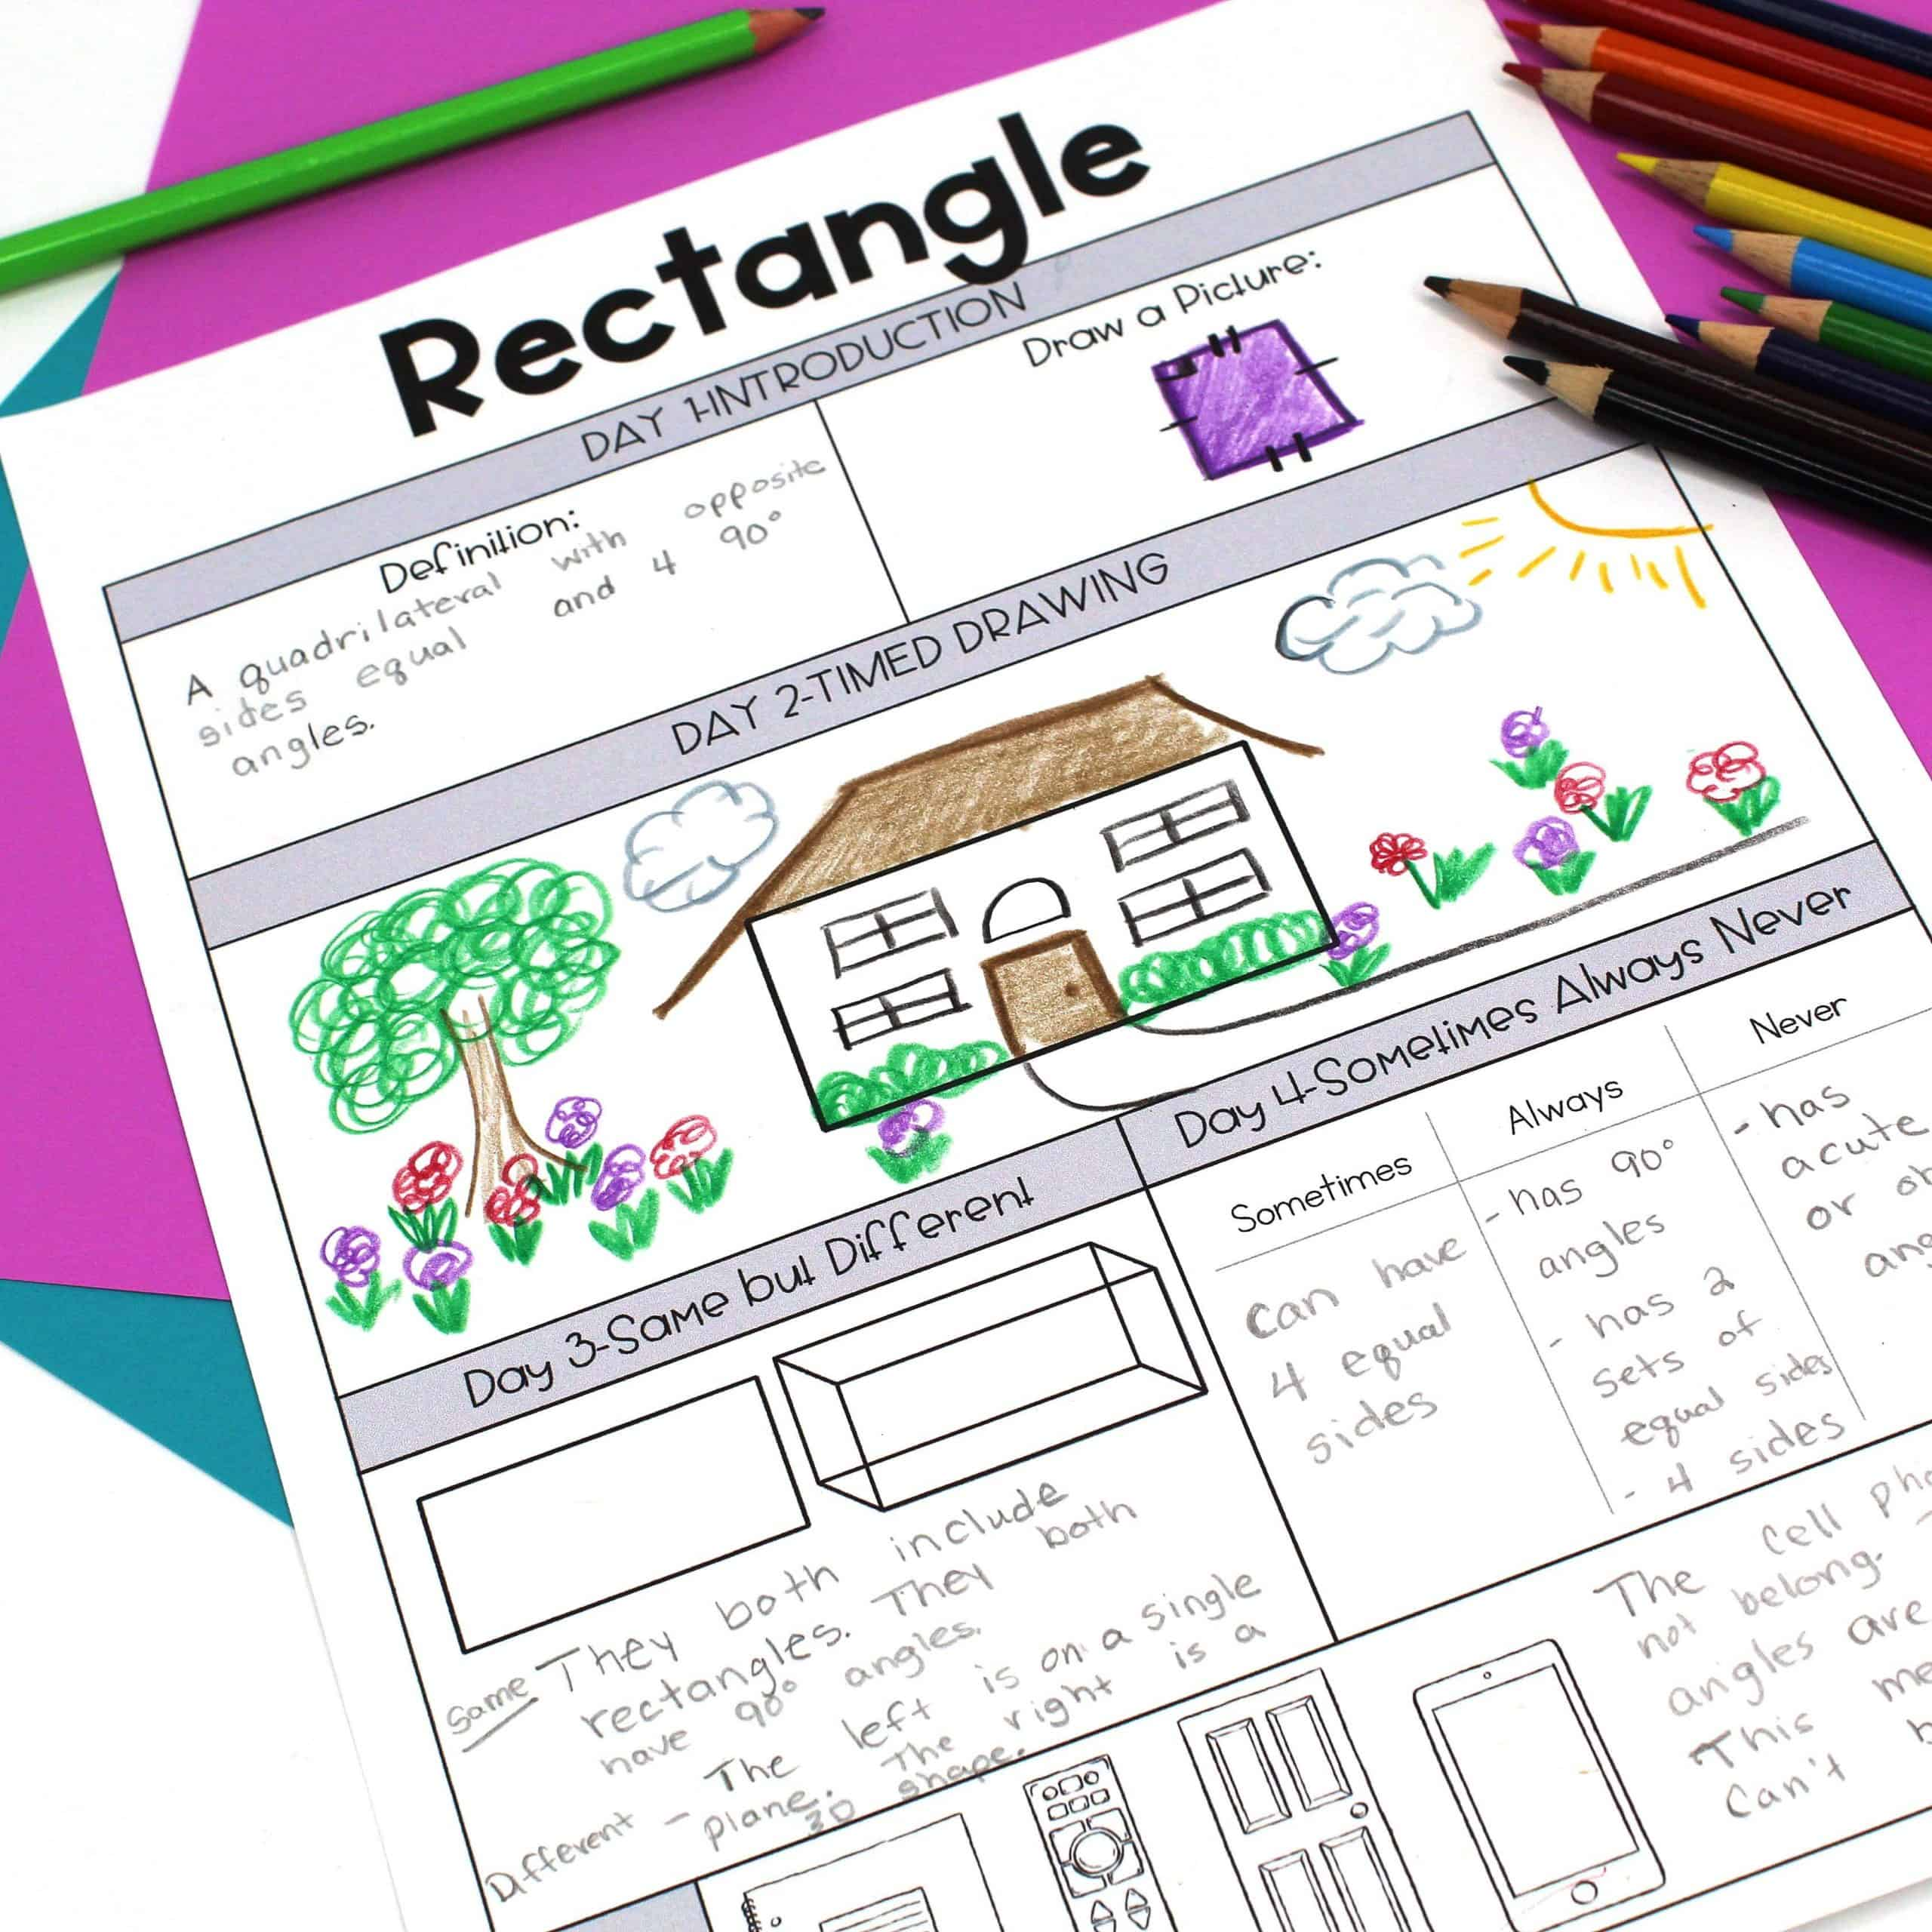 Daily instructional routines worksheet to help teach the definition of a rectangle with different activities per day